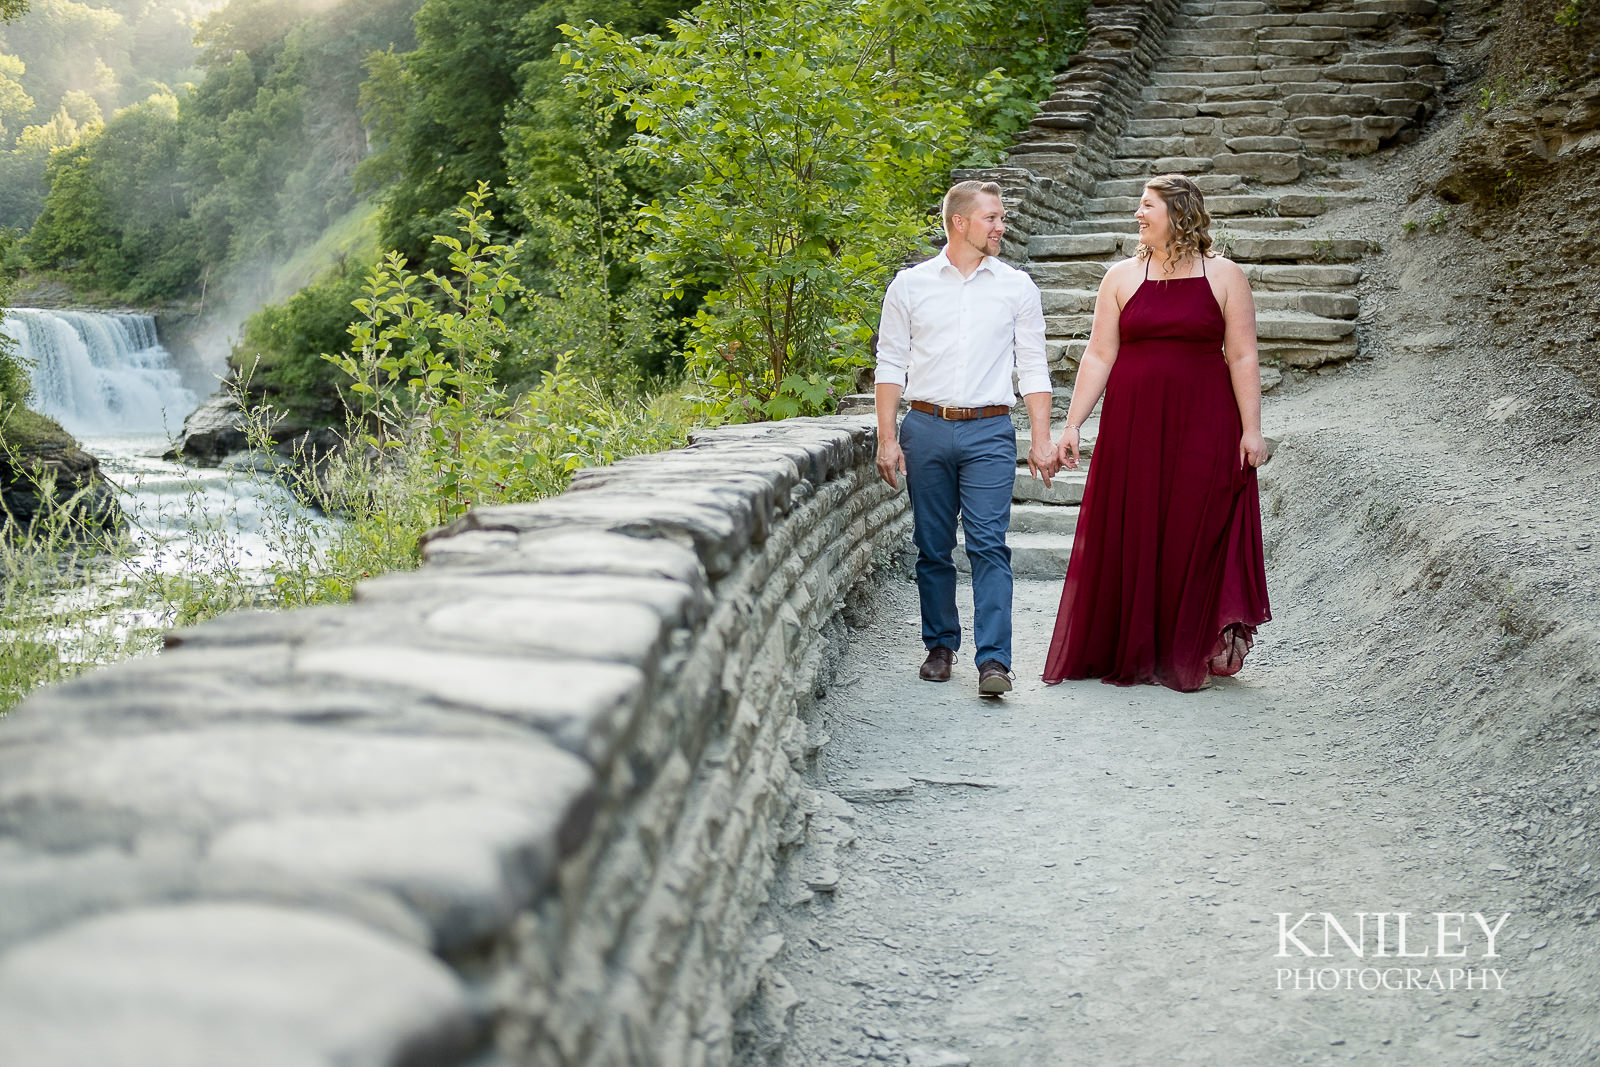 001 - Letchworth State Park Engagement Pictures -XT2A5680.jpg